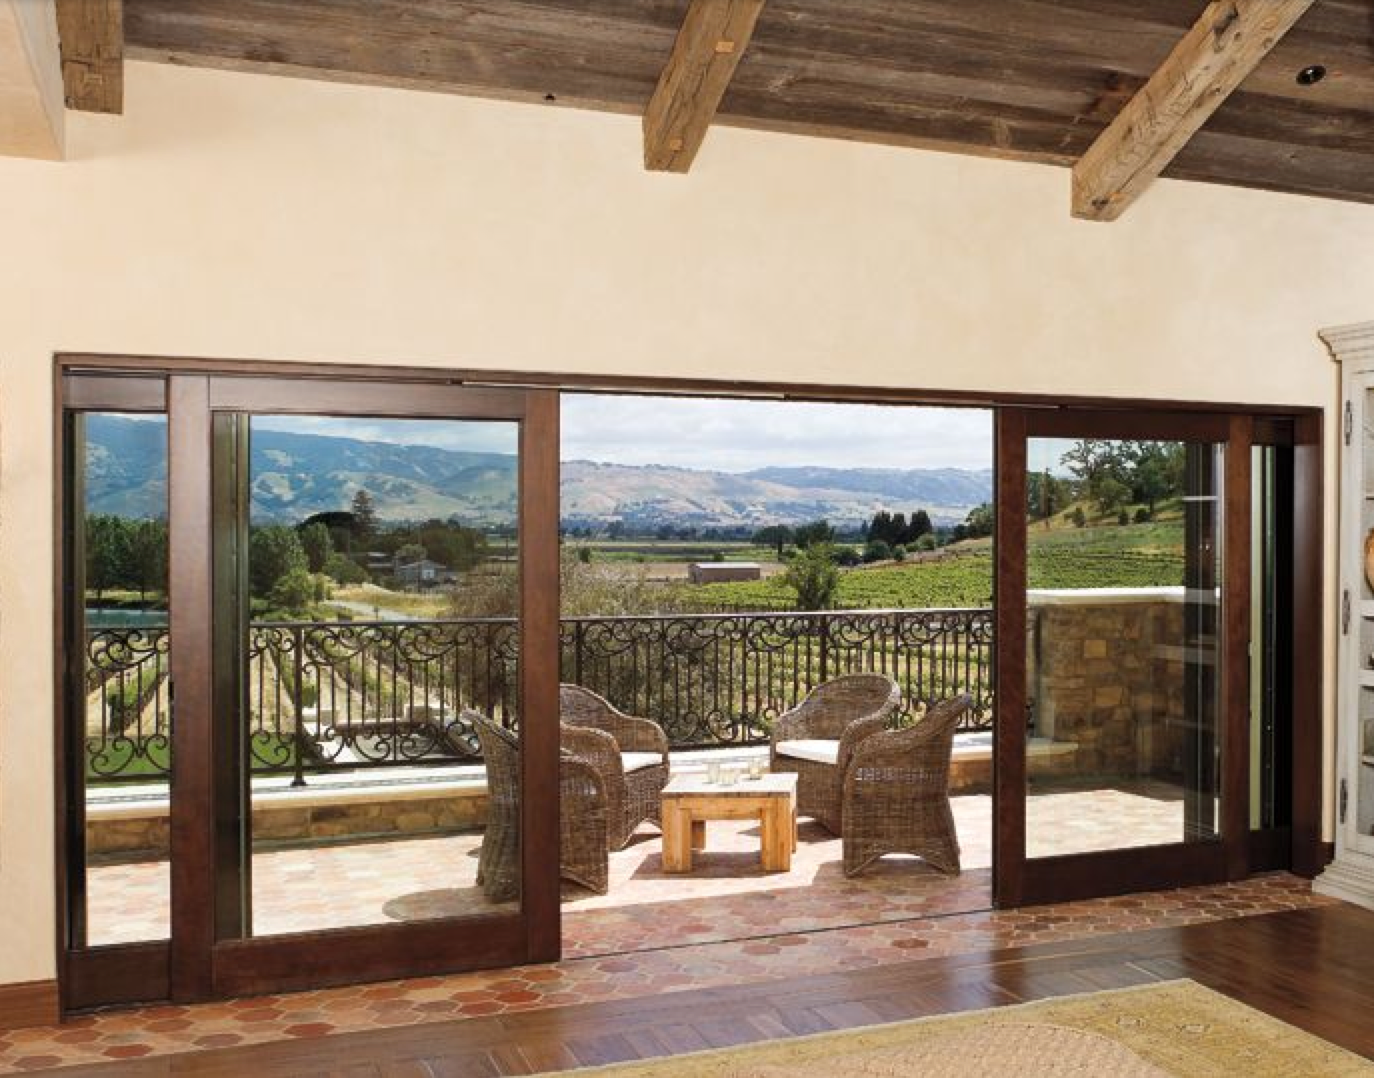 Napa Valley Wood Sliding Glass Door With Vaulted Wood Ceilings.